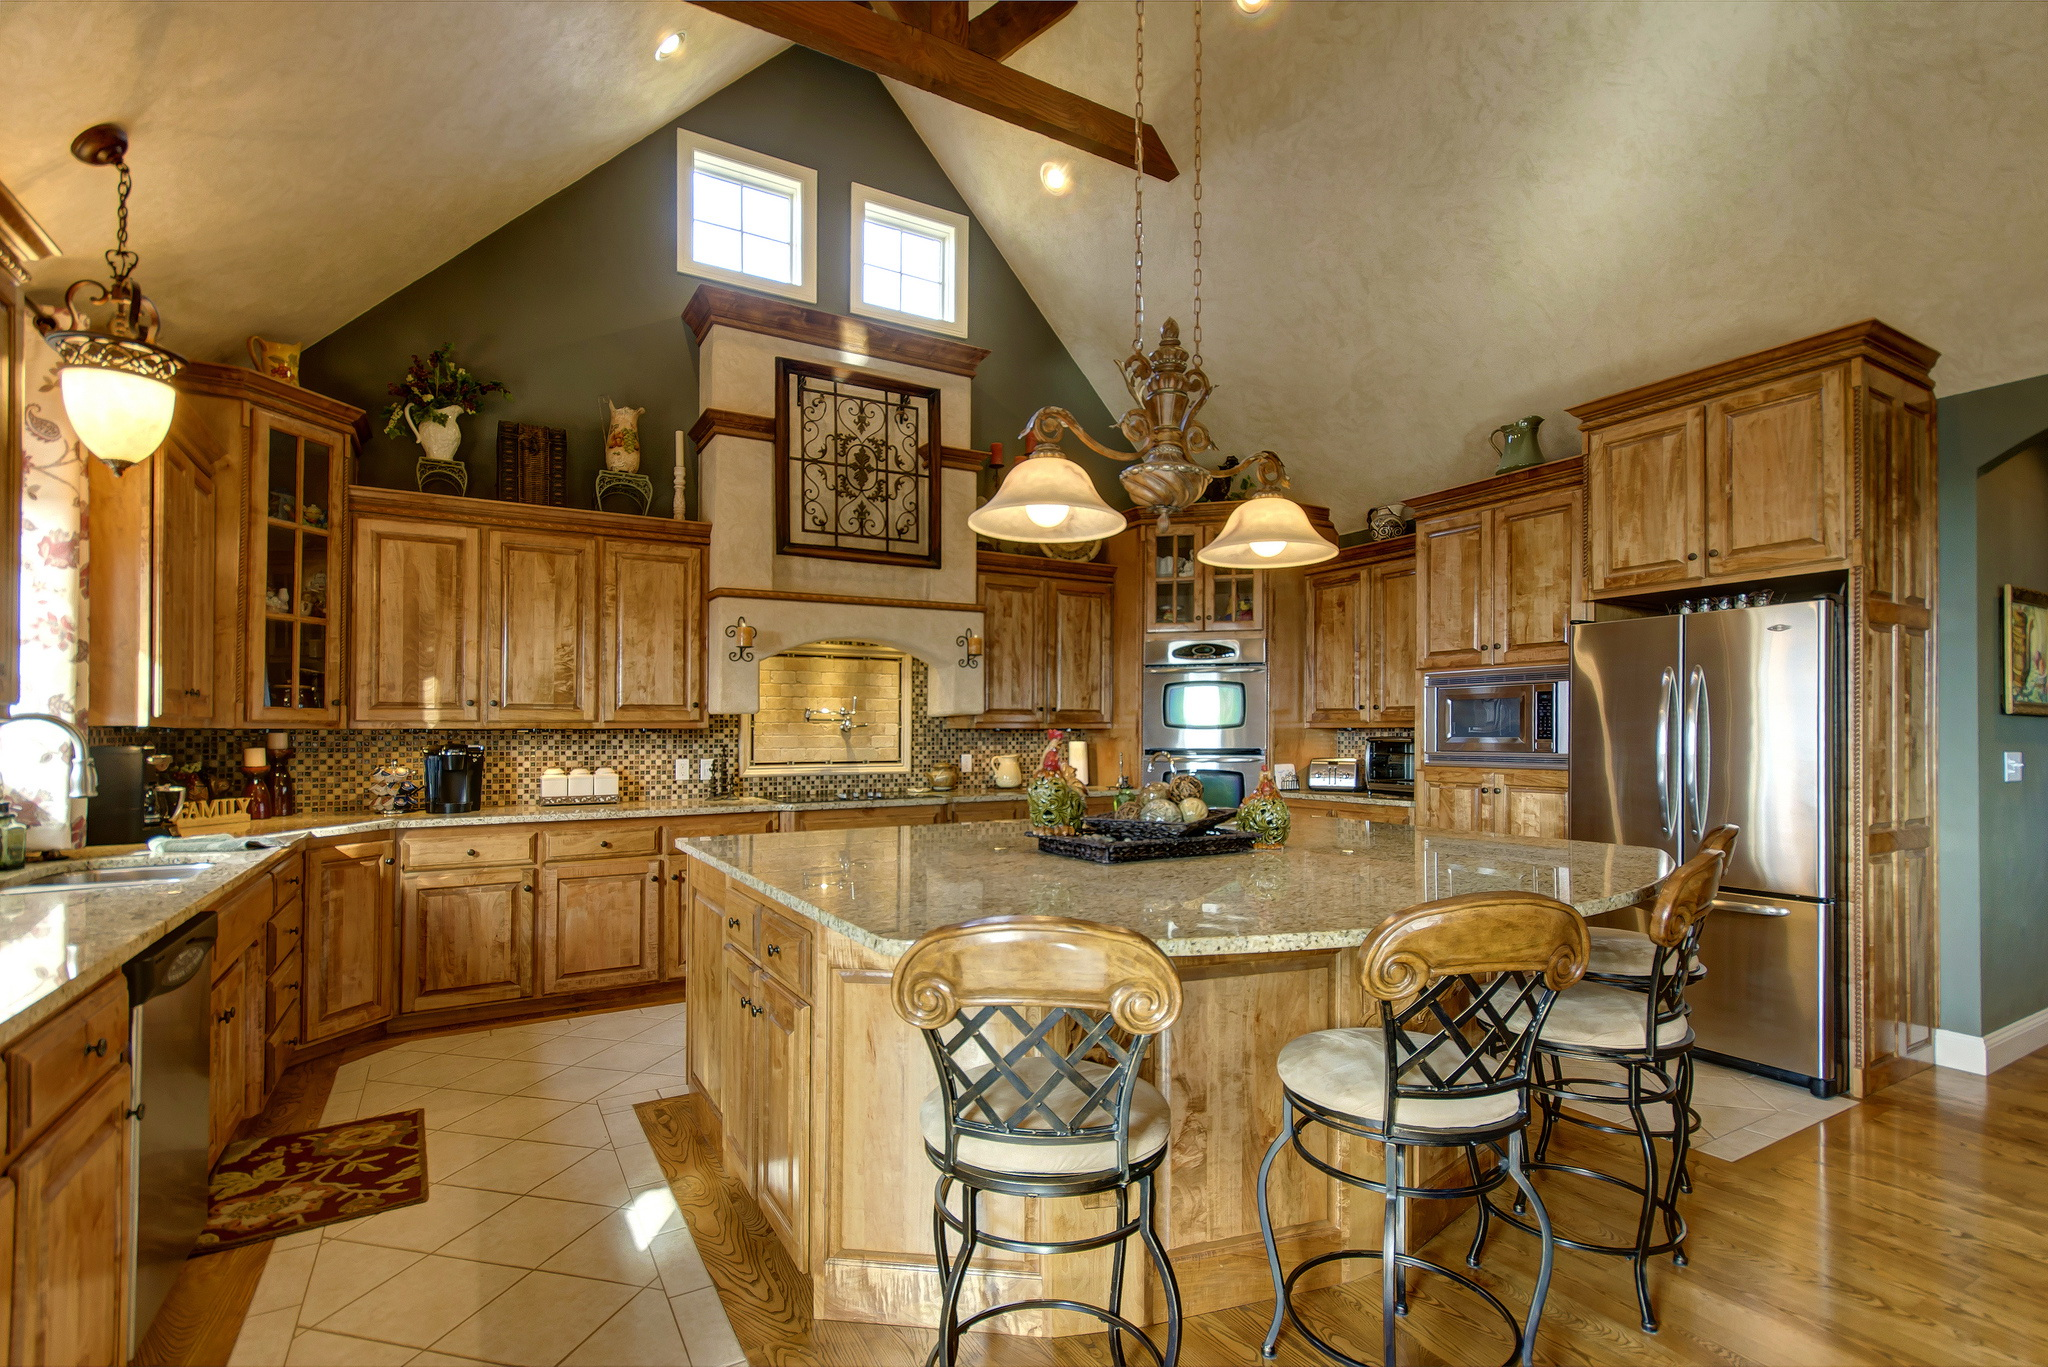 Interior Table Wooden Design Kitchen Chairs Rooms Wallpaper 2048x1367 53063 Wallpaperup